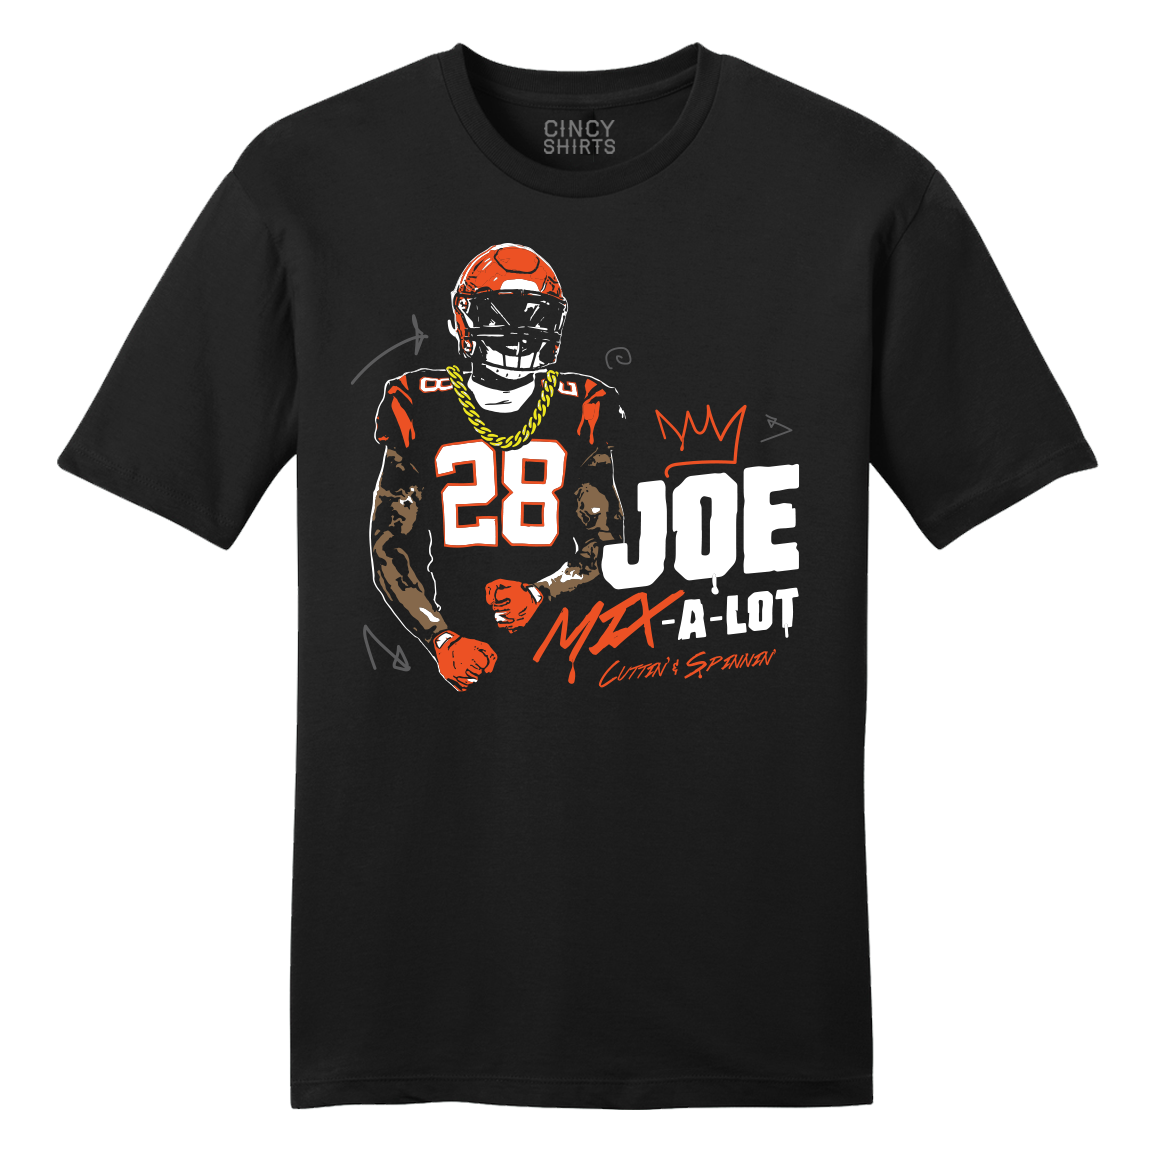 Joe Mix-a-Lot - Cincy Shirts